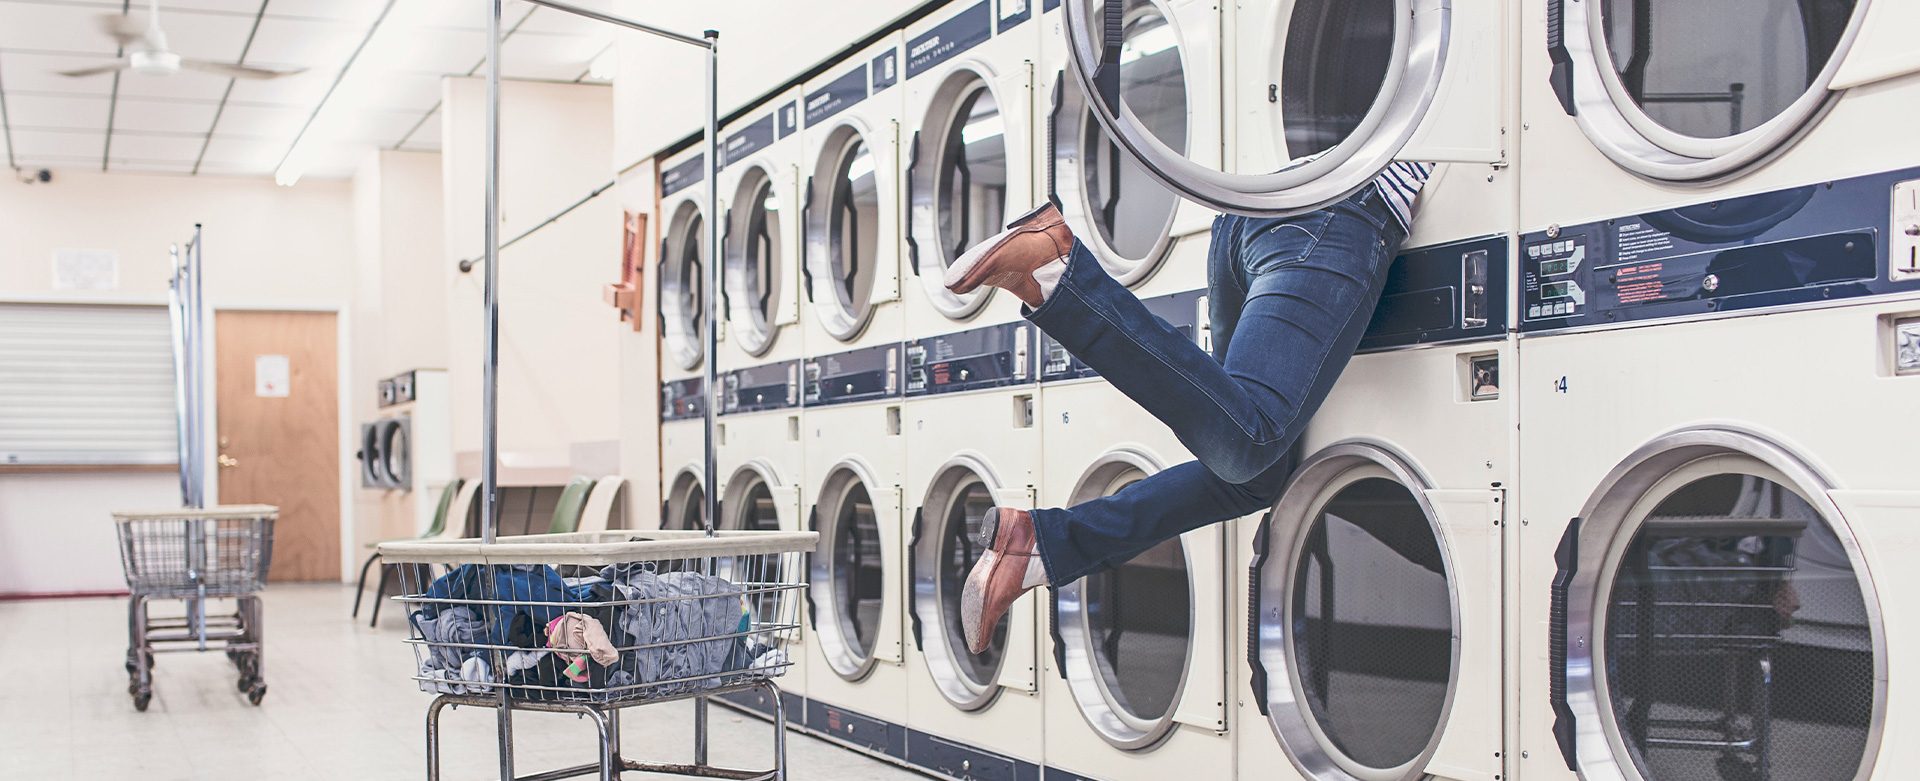 A pair of legs hanging out a washing machine in a laundrette